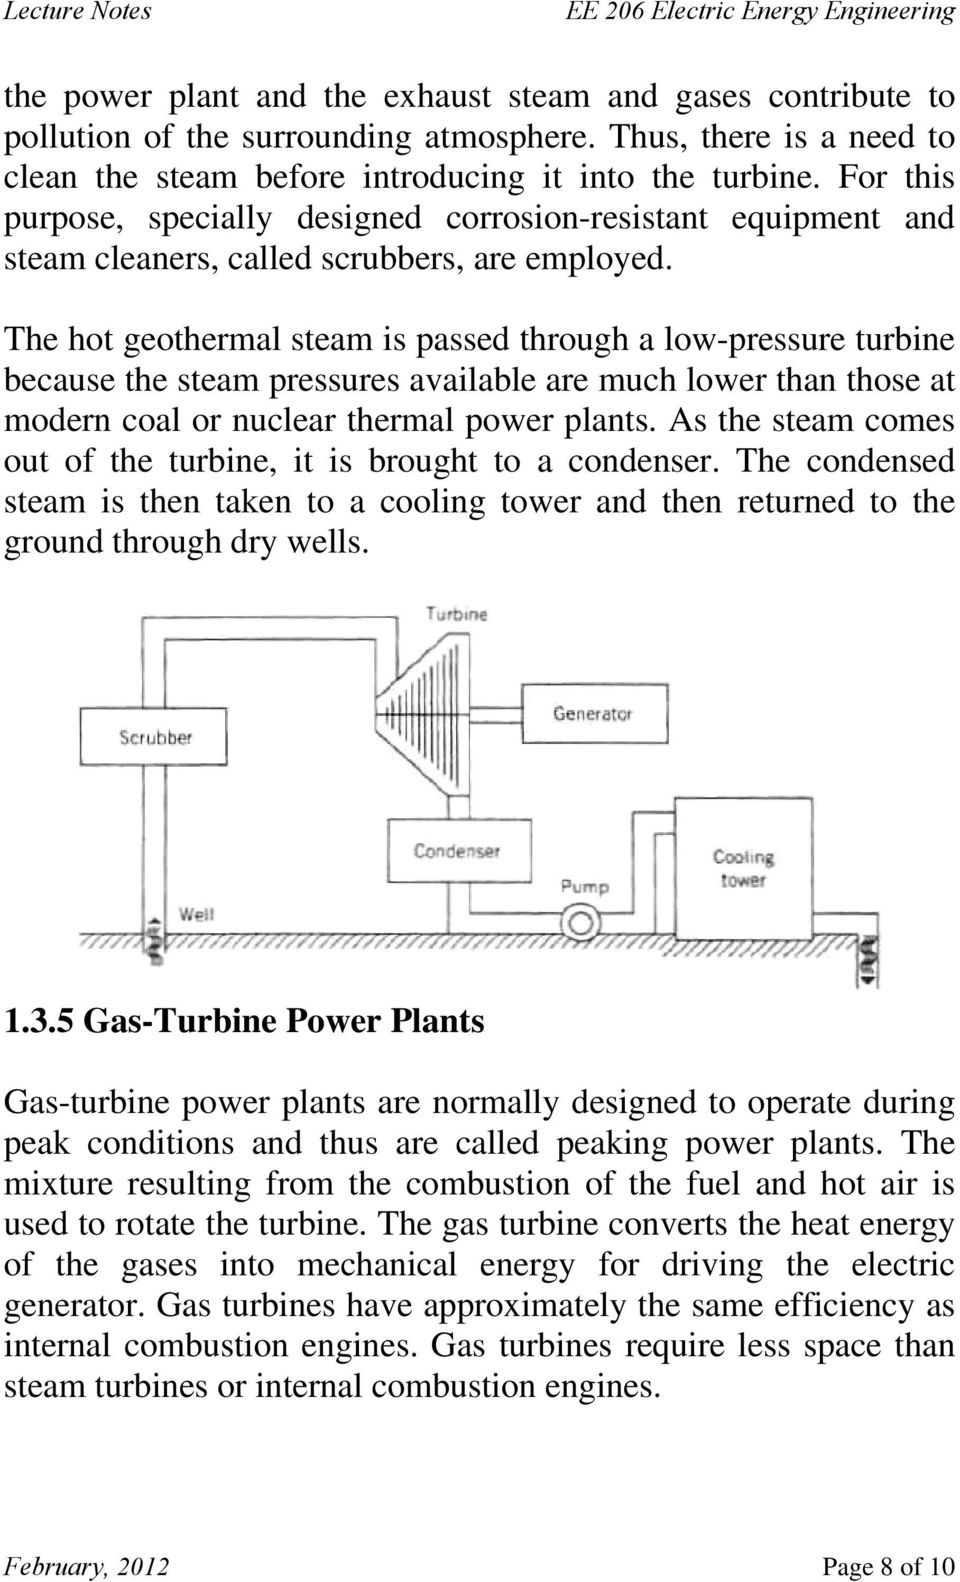 Ee 206 Electric Energy Engineering Pdf Dry Steam Power Plant Diagram The Hot Geothermal Is Passed Through A Low Pressure Turbine Because Pressures